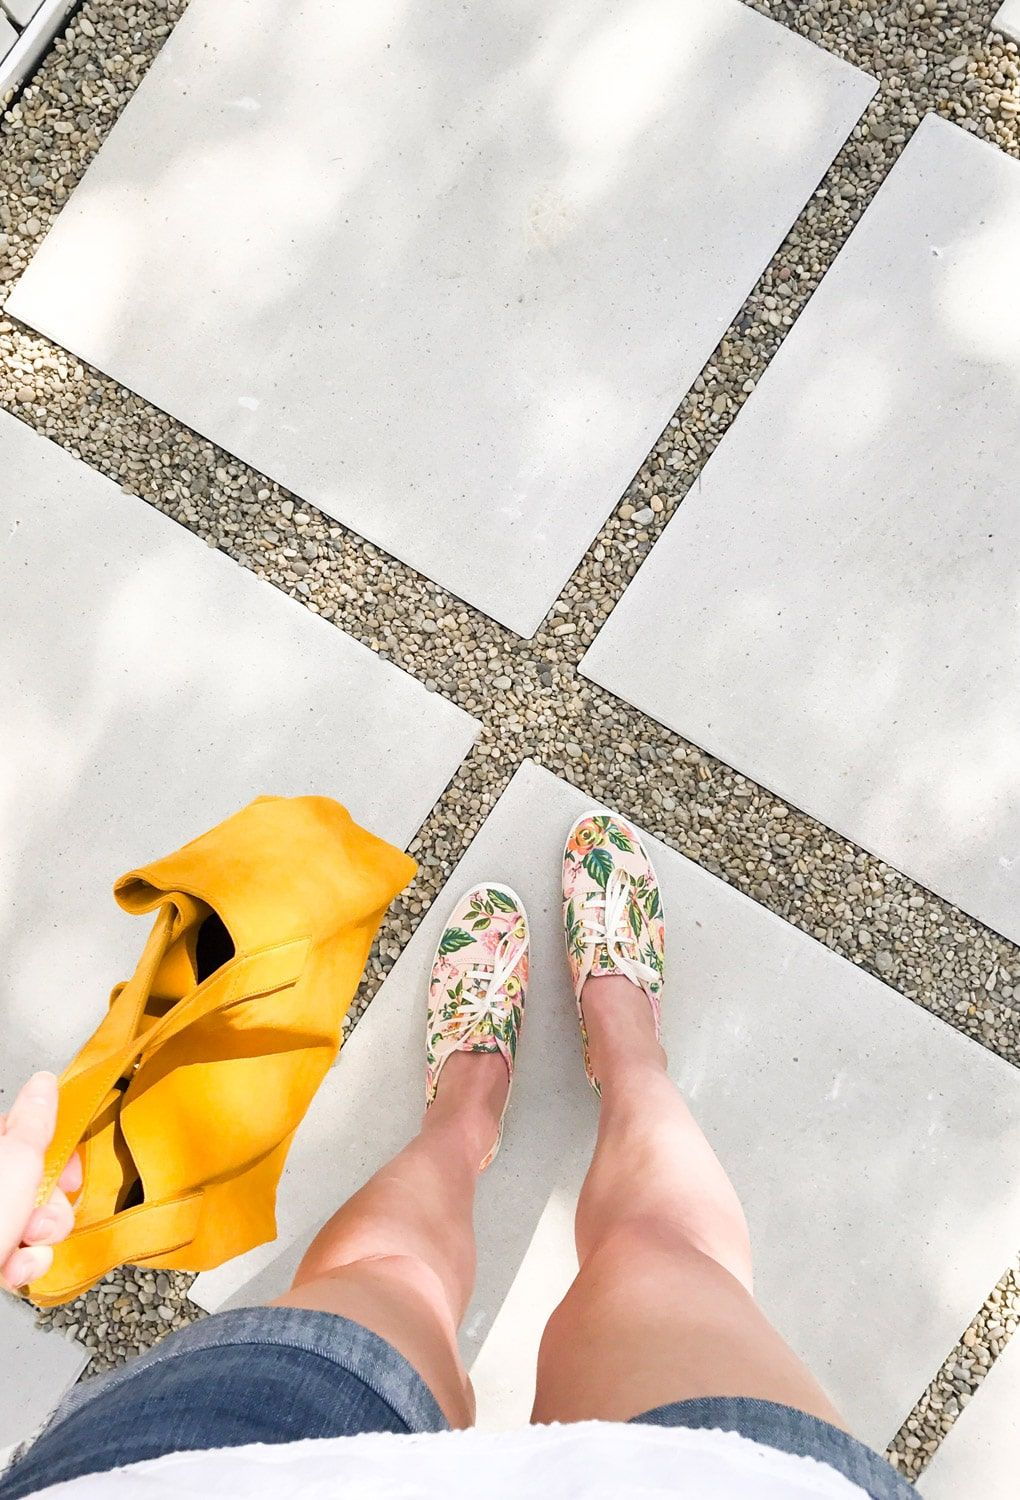 Building the Paver Patio | Ashley Brooke Designs